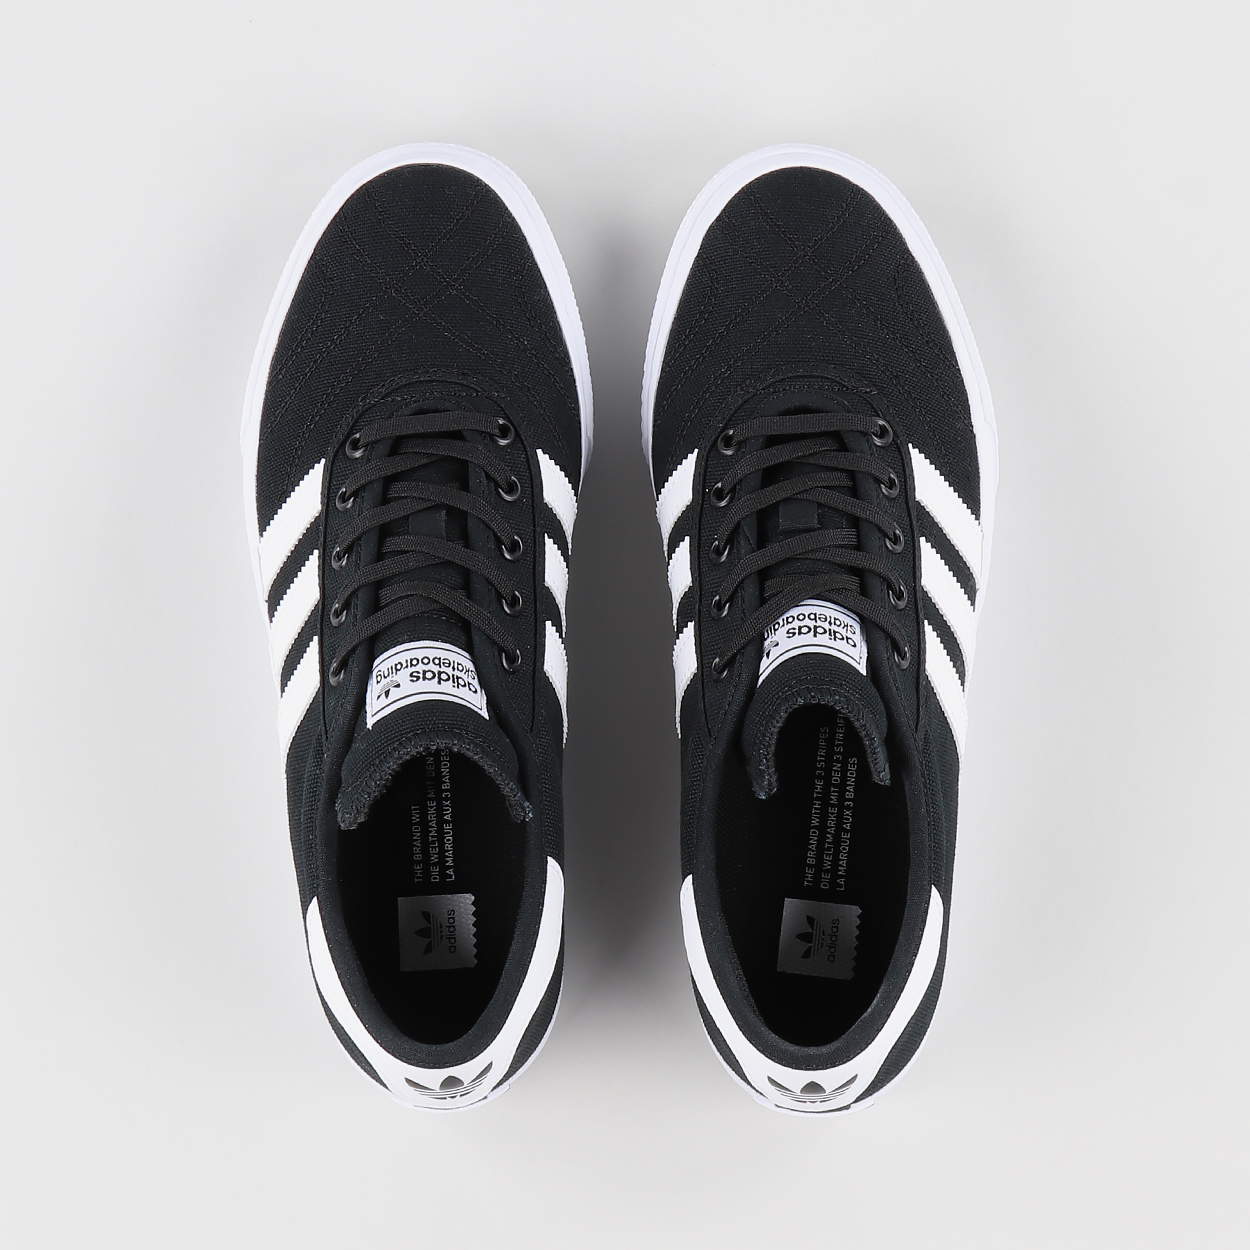 innovative design 4f318 c53ef Inspired by classic soccer boots, the Adi Ease skate shoe has been revamped  with a new strong canvas upper to provide a versatile shoe for riding in.  Adidas